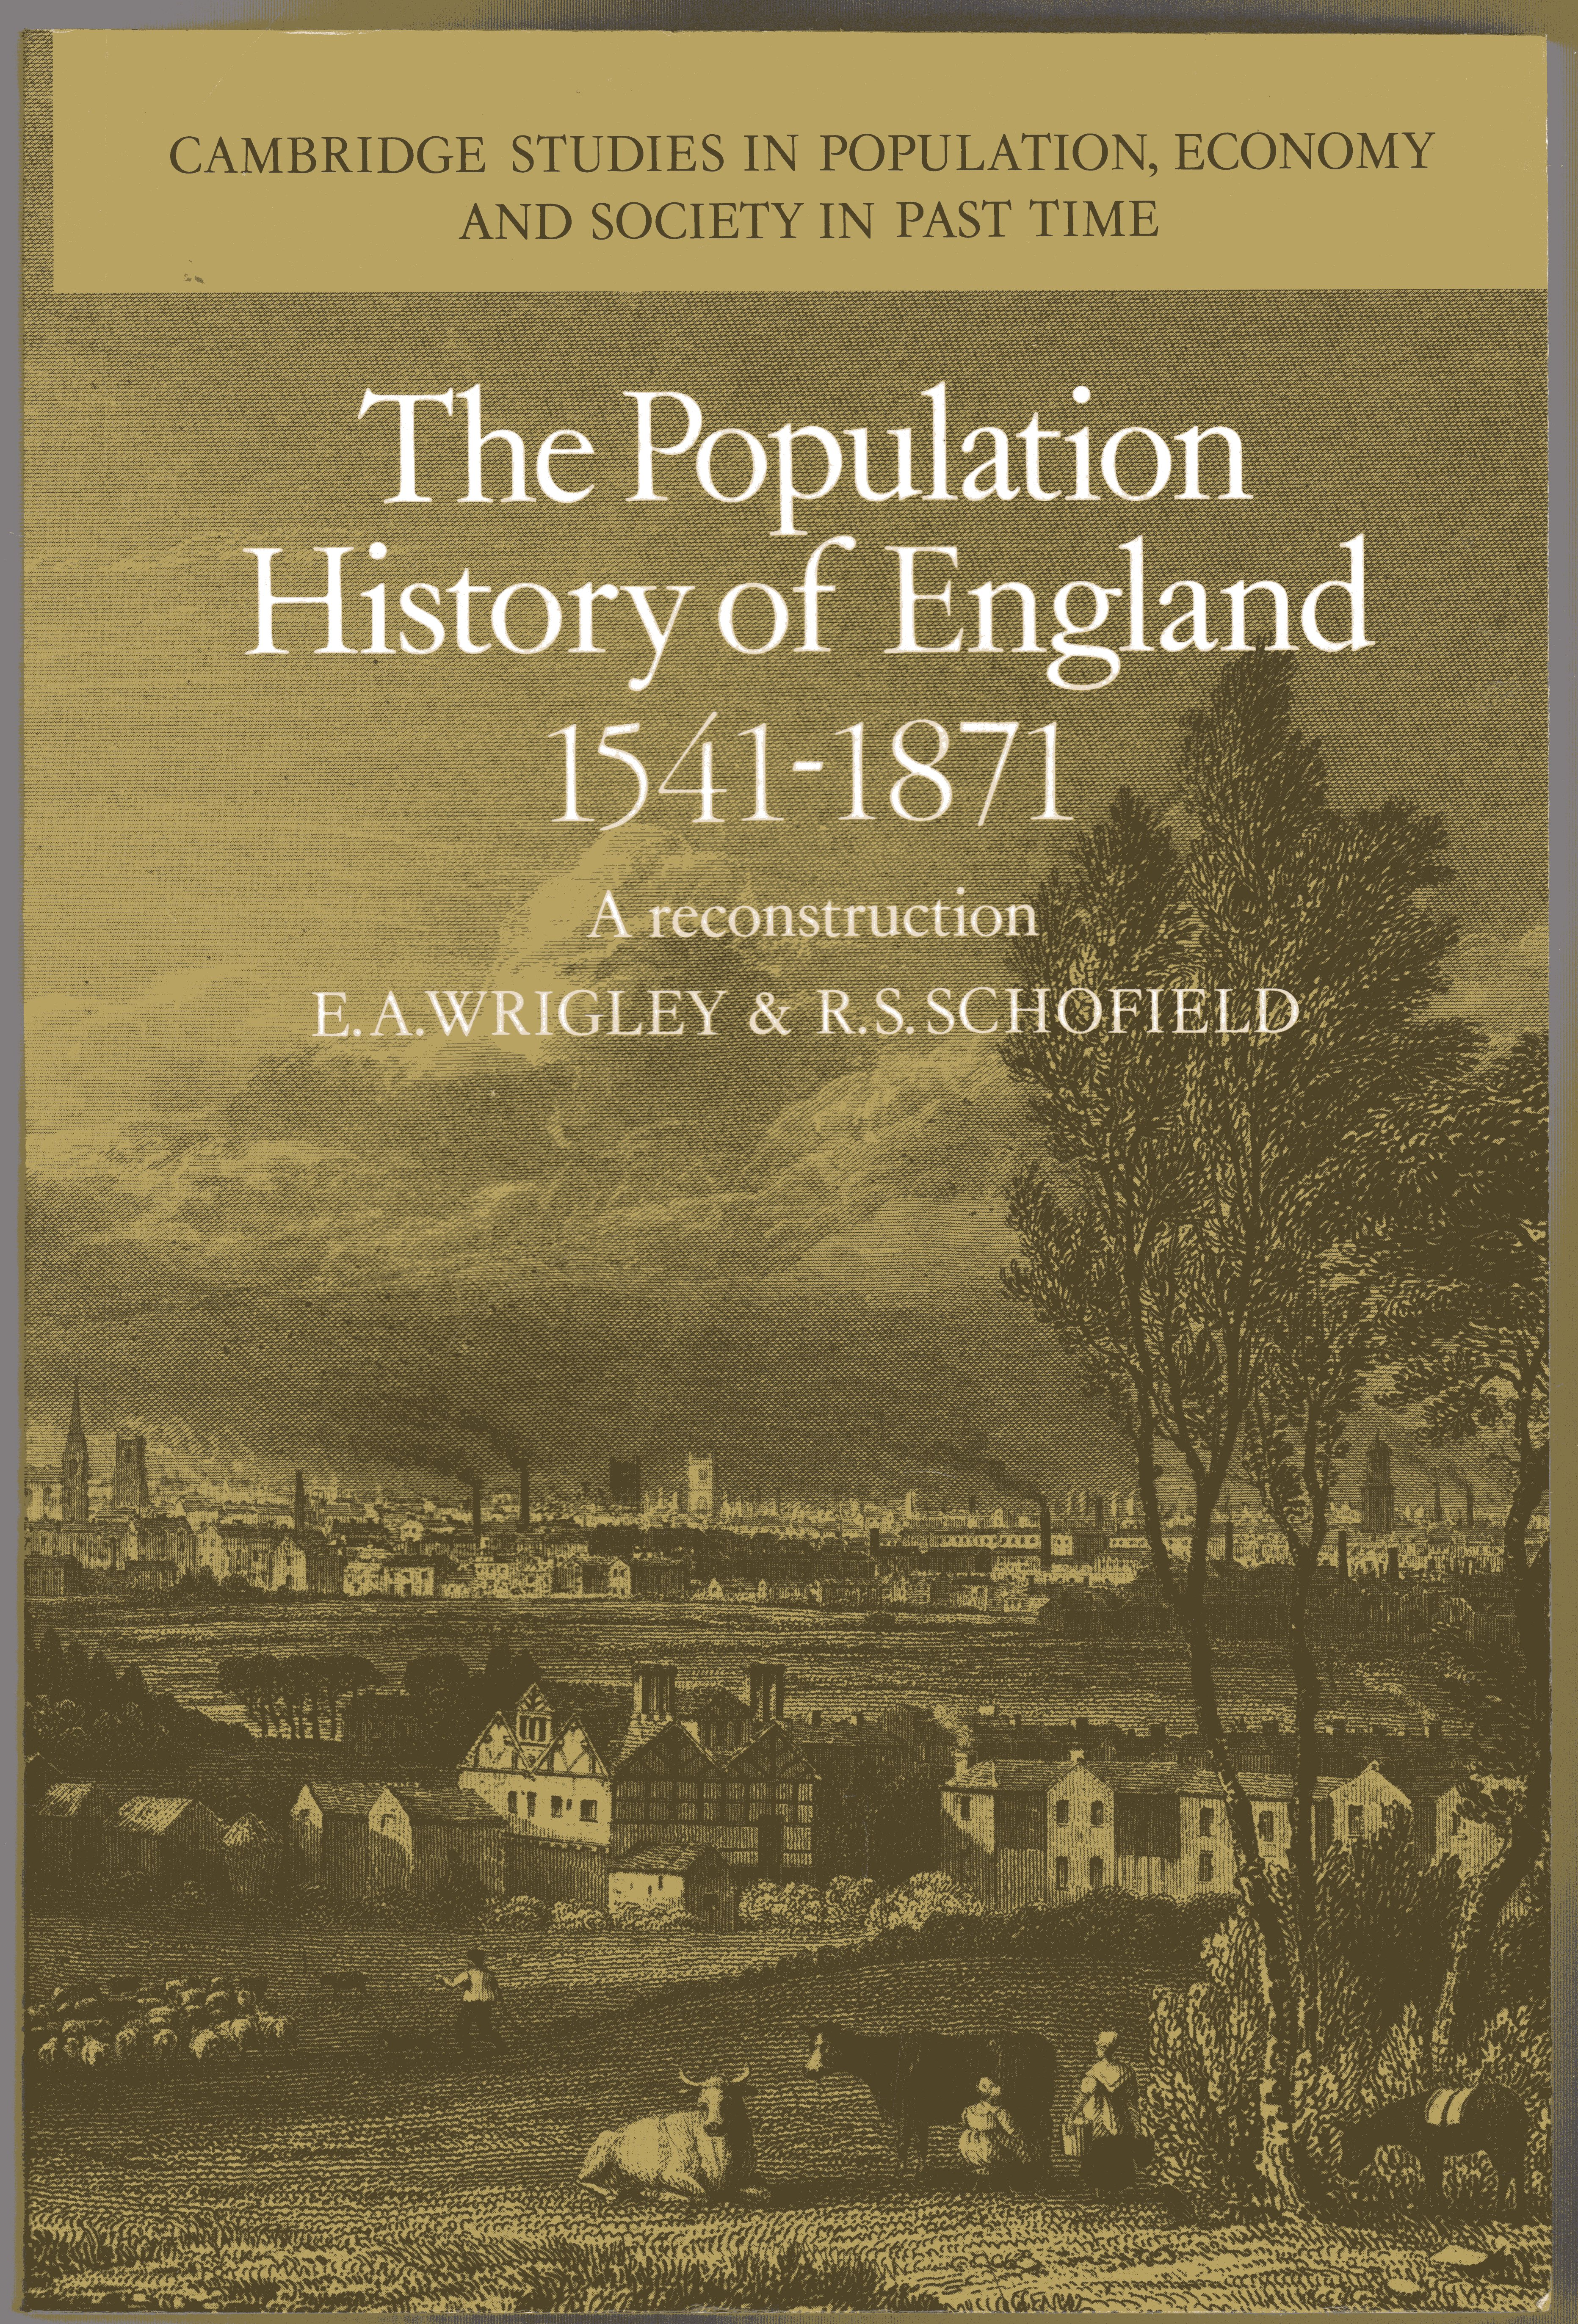 Image for The Population History of England 1541-1871: A Reconstruction